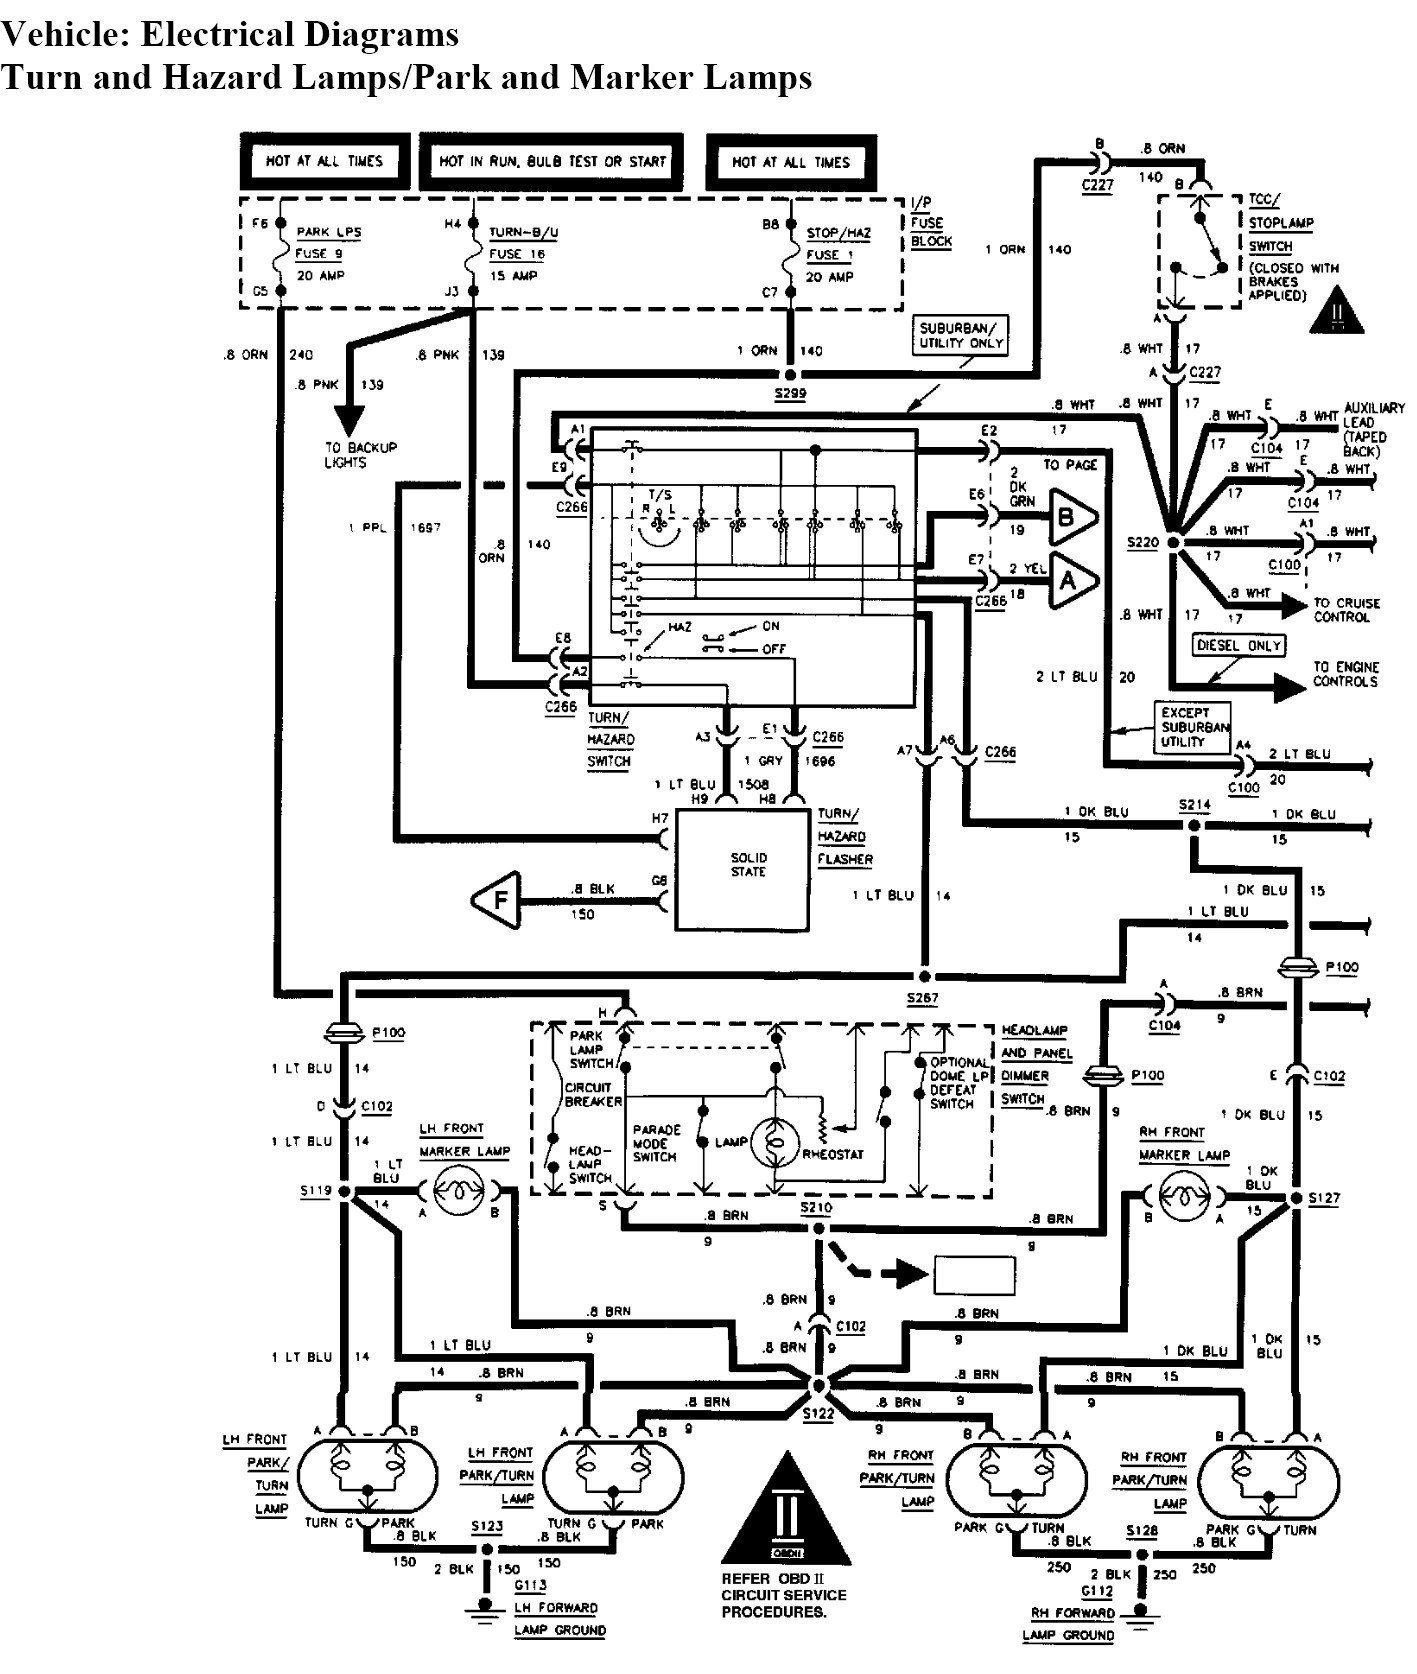 2001 Jeep Cherokee Sport Wiring Diagram Pictures